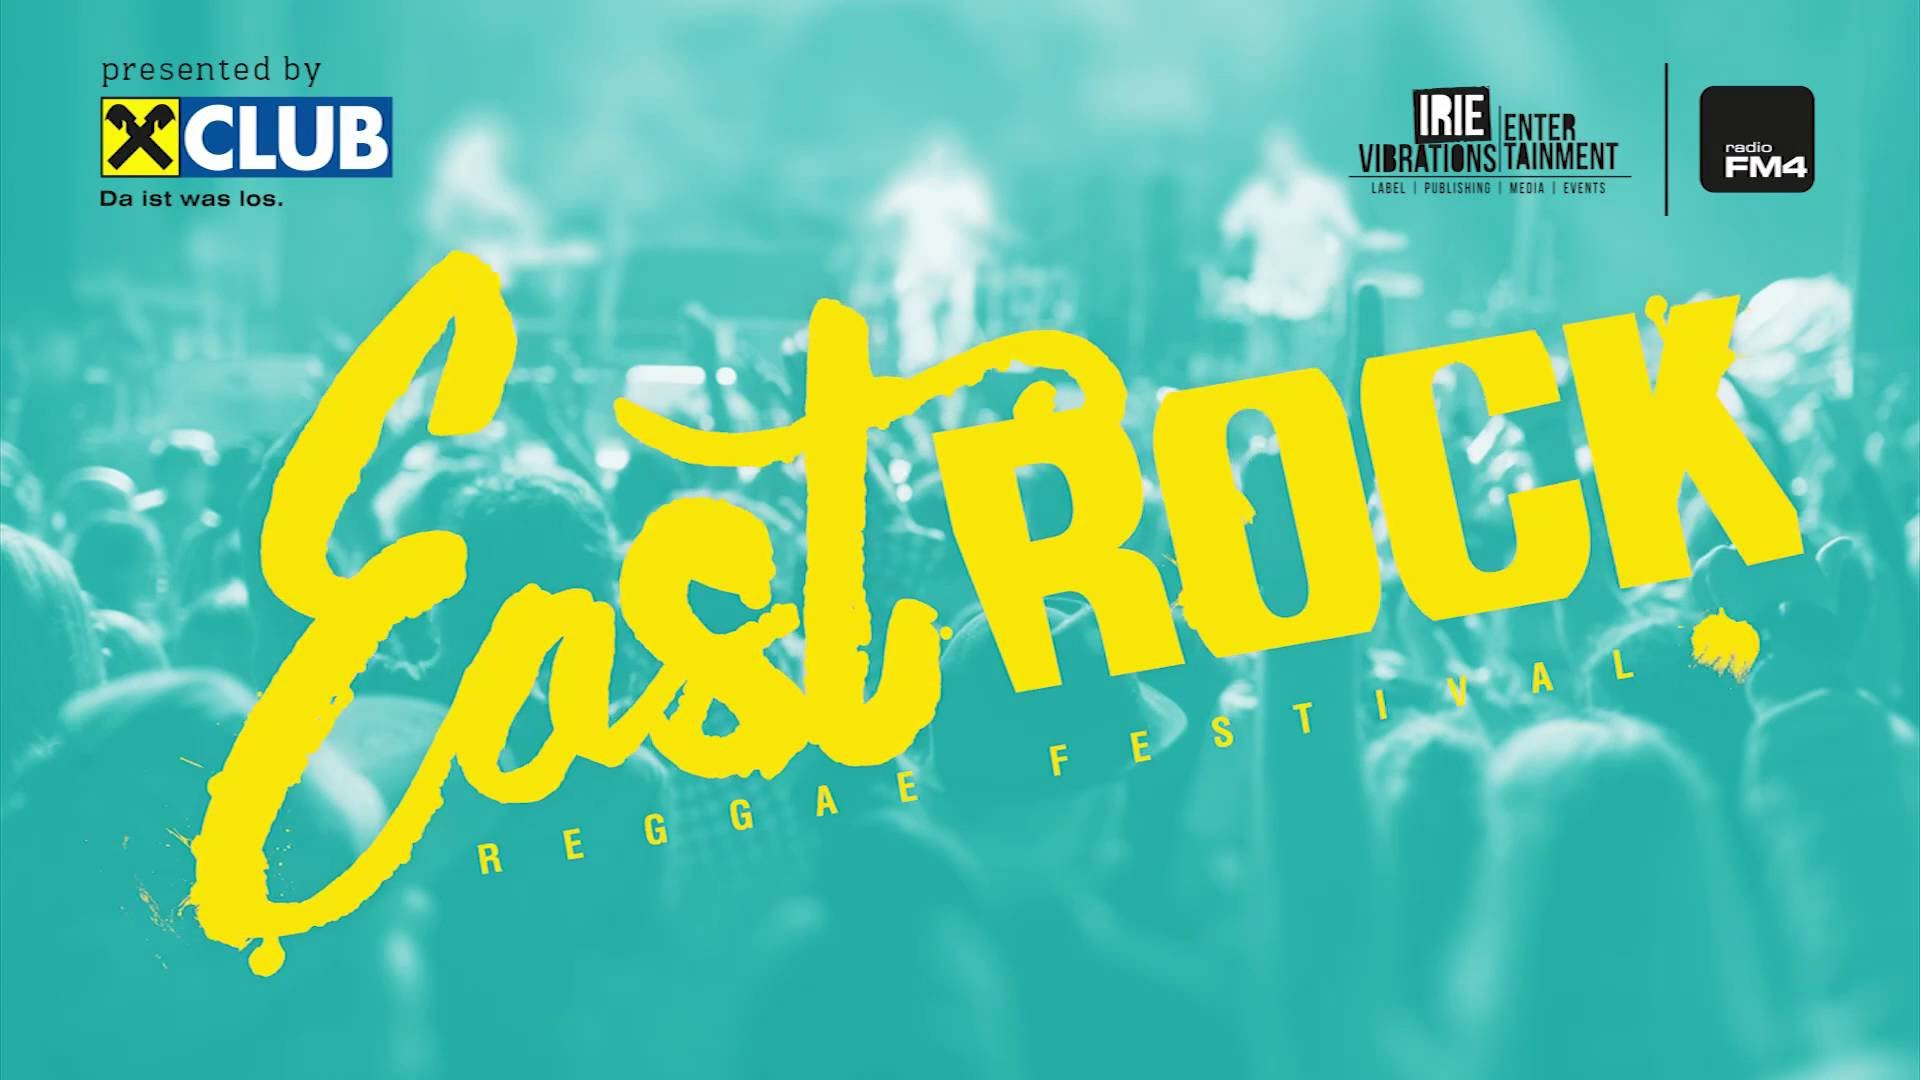 Eastrock Festival 2016 (Trailer) [6/7/2016]